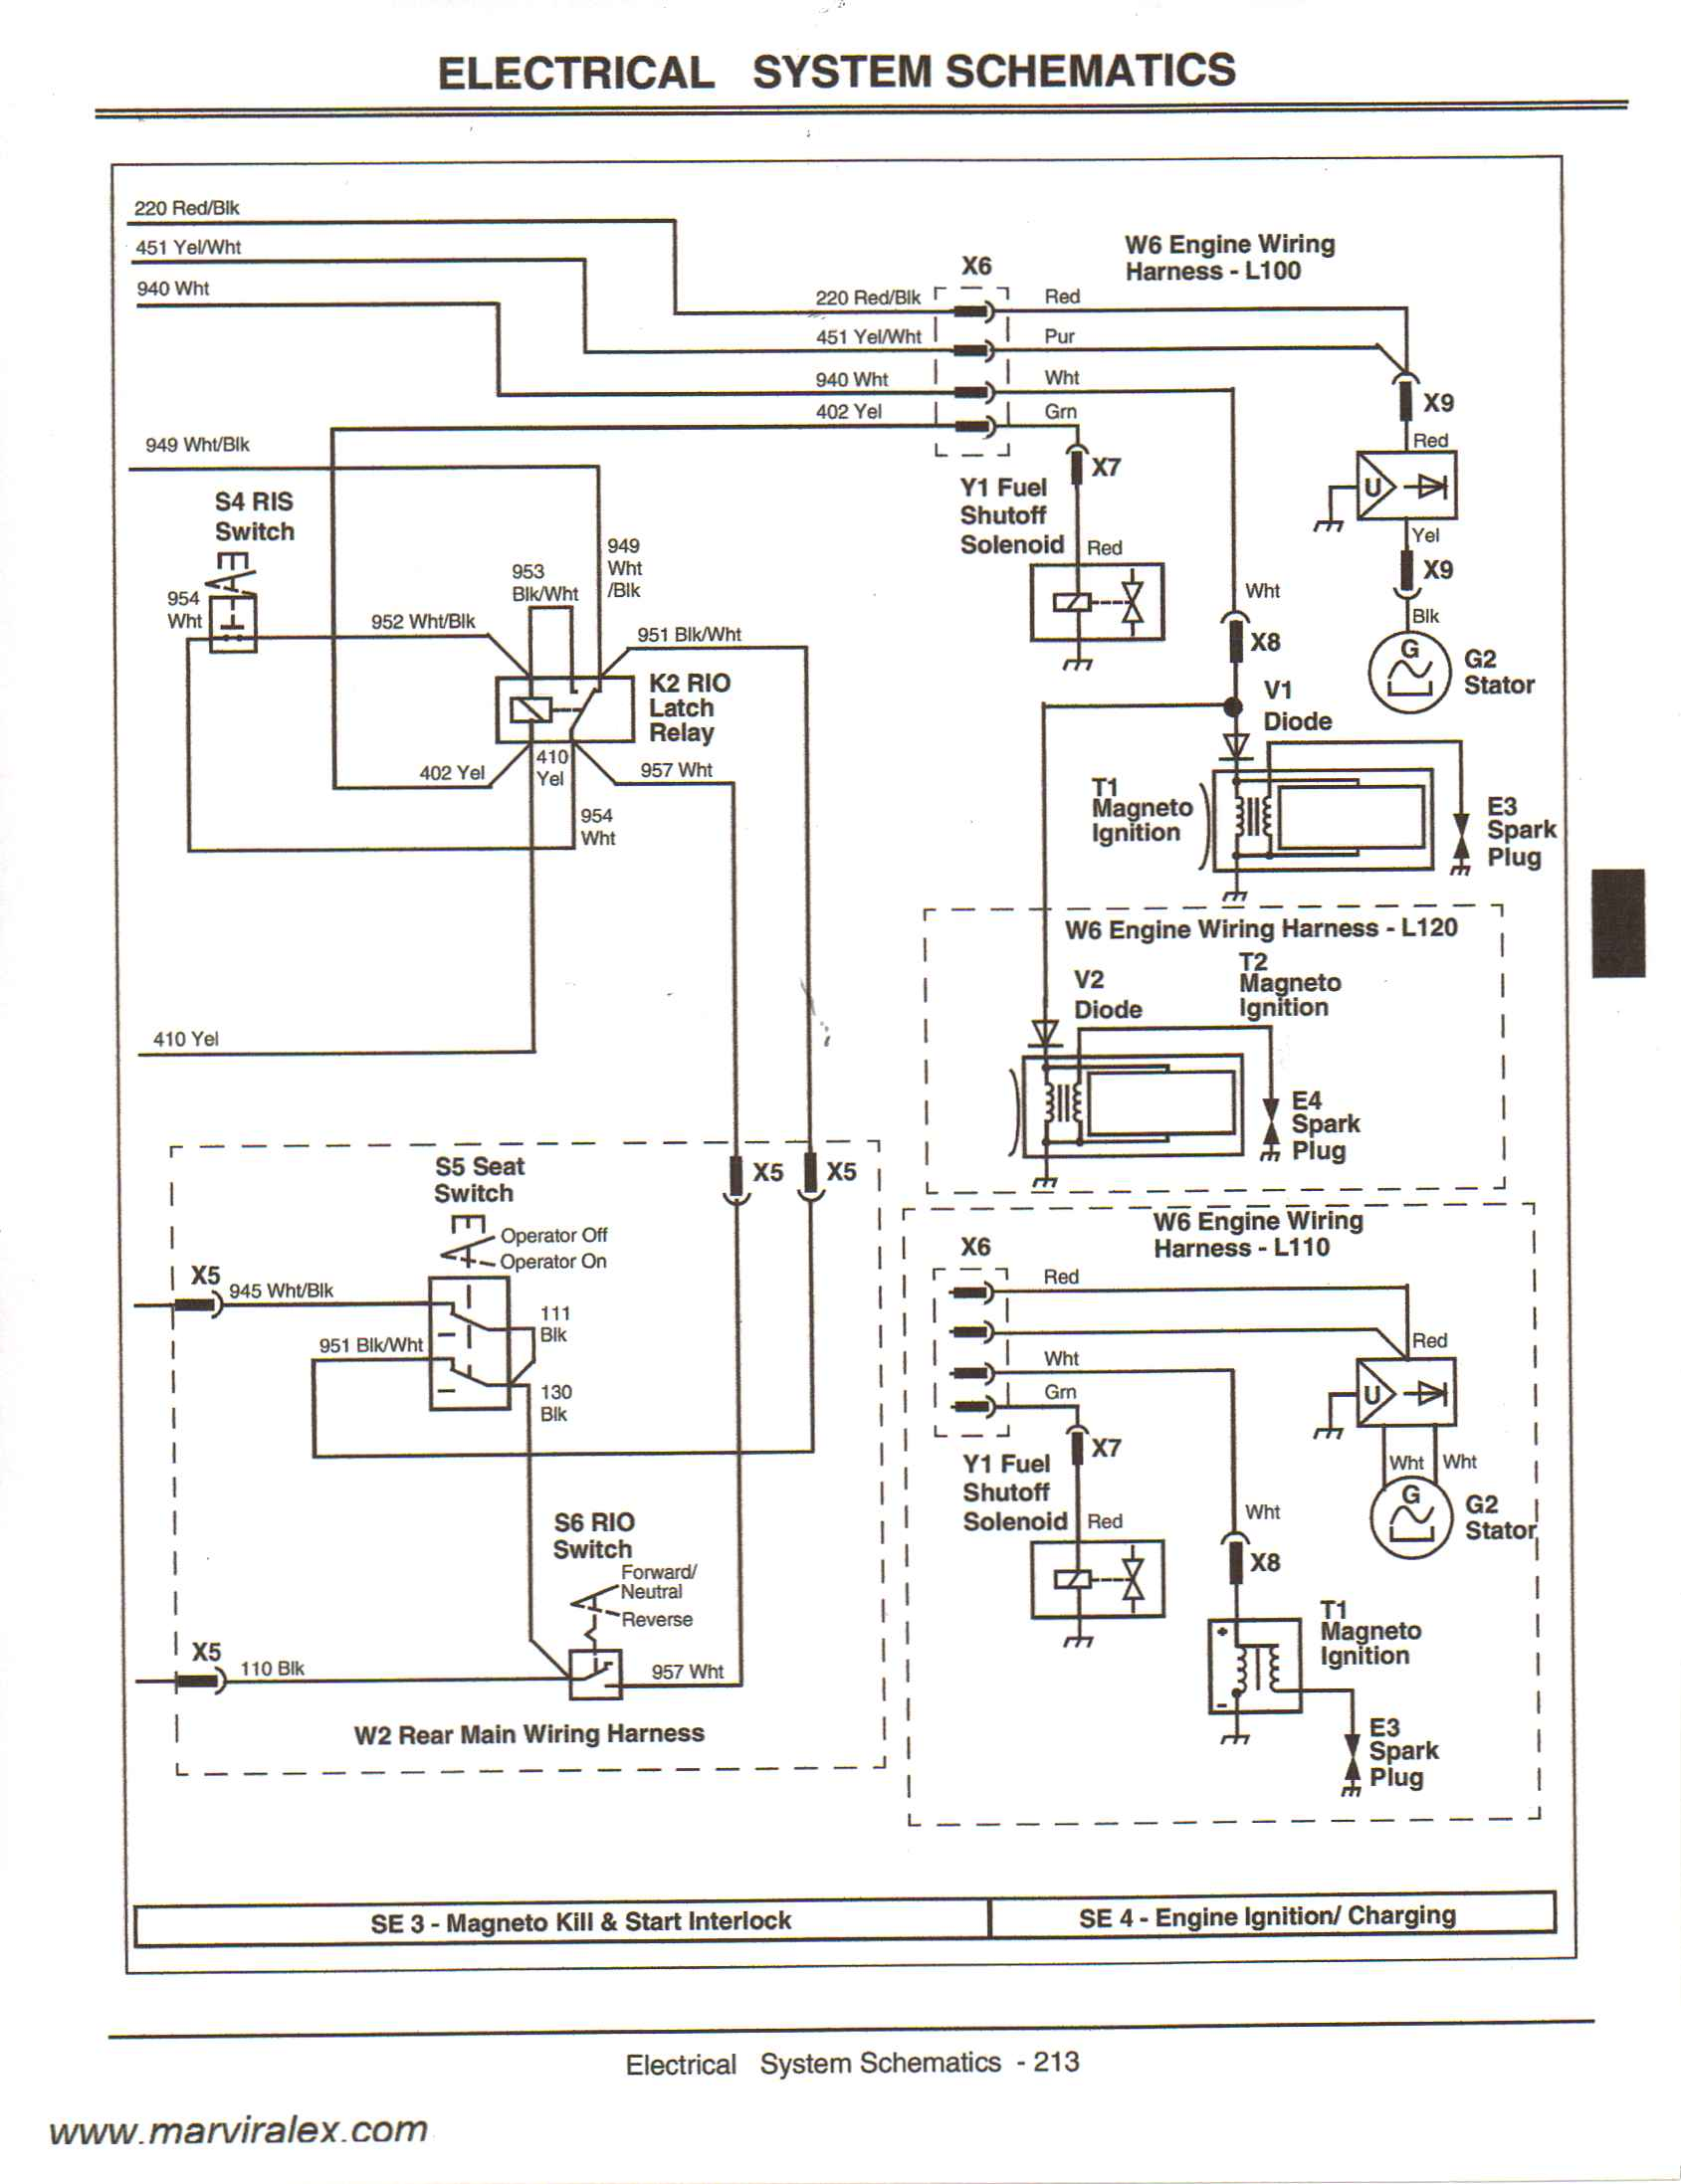 [SCHEMATICS_4UK]  Deere Gator 6x4 Wiring Diagram -2001 Gmc Sierra 1500 Wiring Diagram |  Begeboy Wiring Diagram Source | John Deere Gator Wiring Diagram |  | Begeboy Wiring Diagram Source